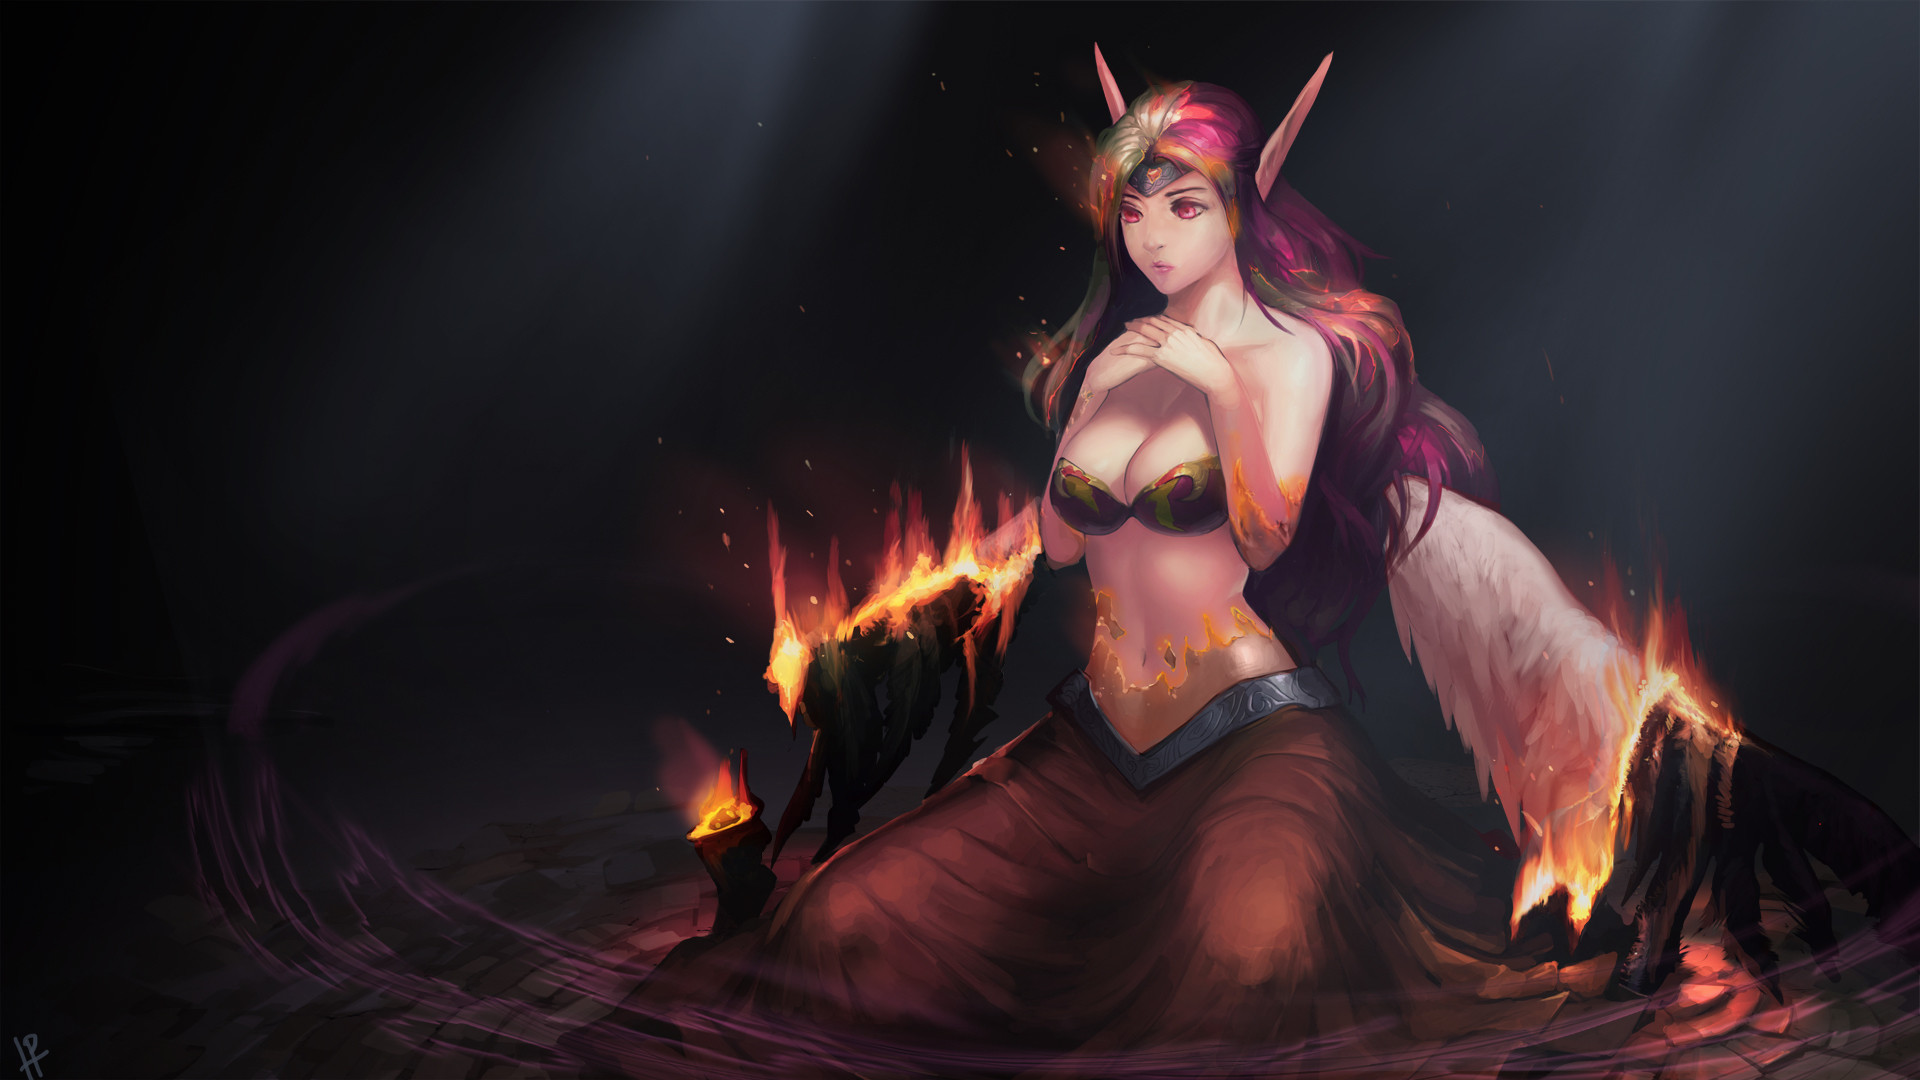 Res: 1920x1080, Burn the wings of a demon